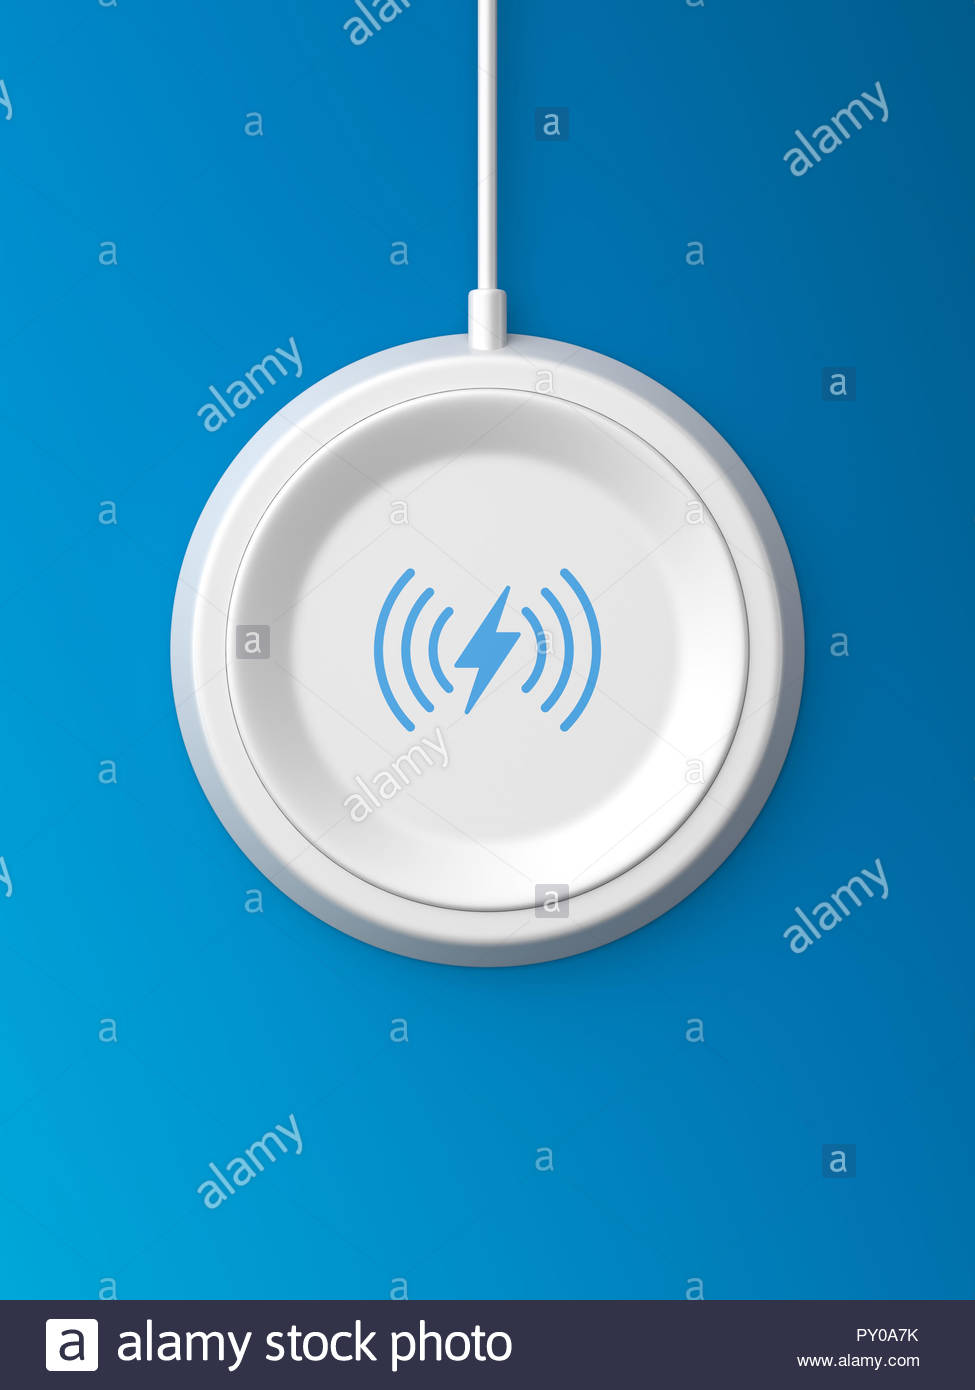 3d rendered top view of a white wireless charger with a bevelled edge and recessed base on a blue background. - Stock Image